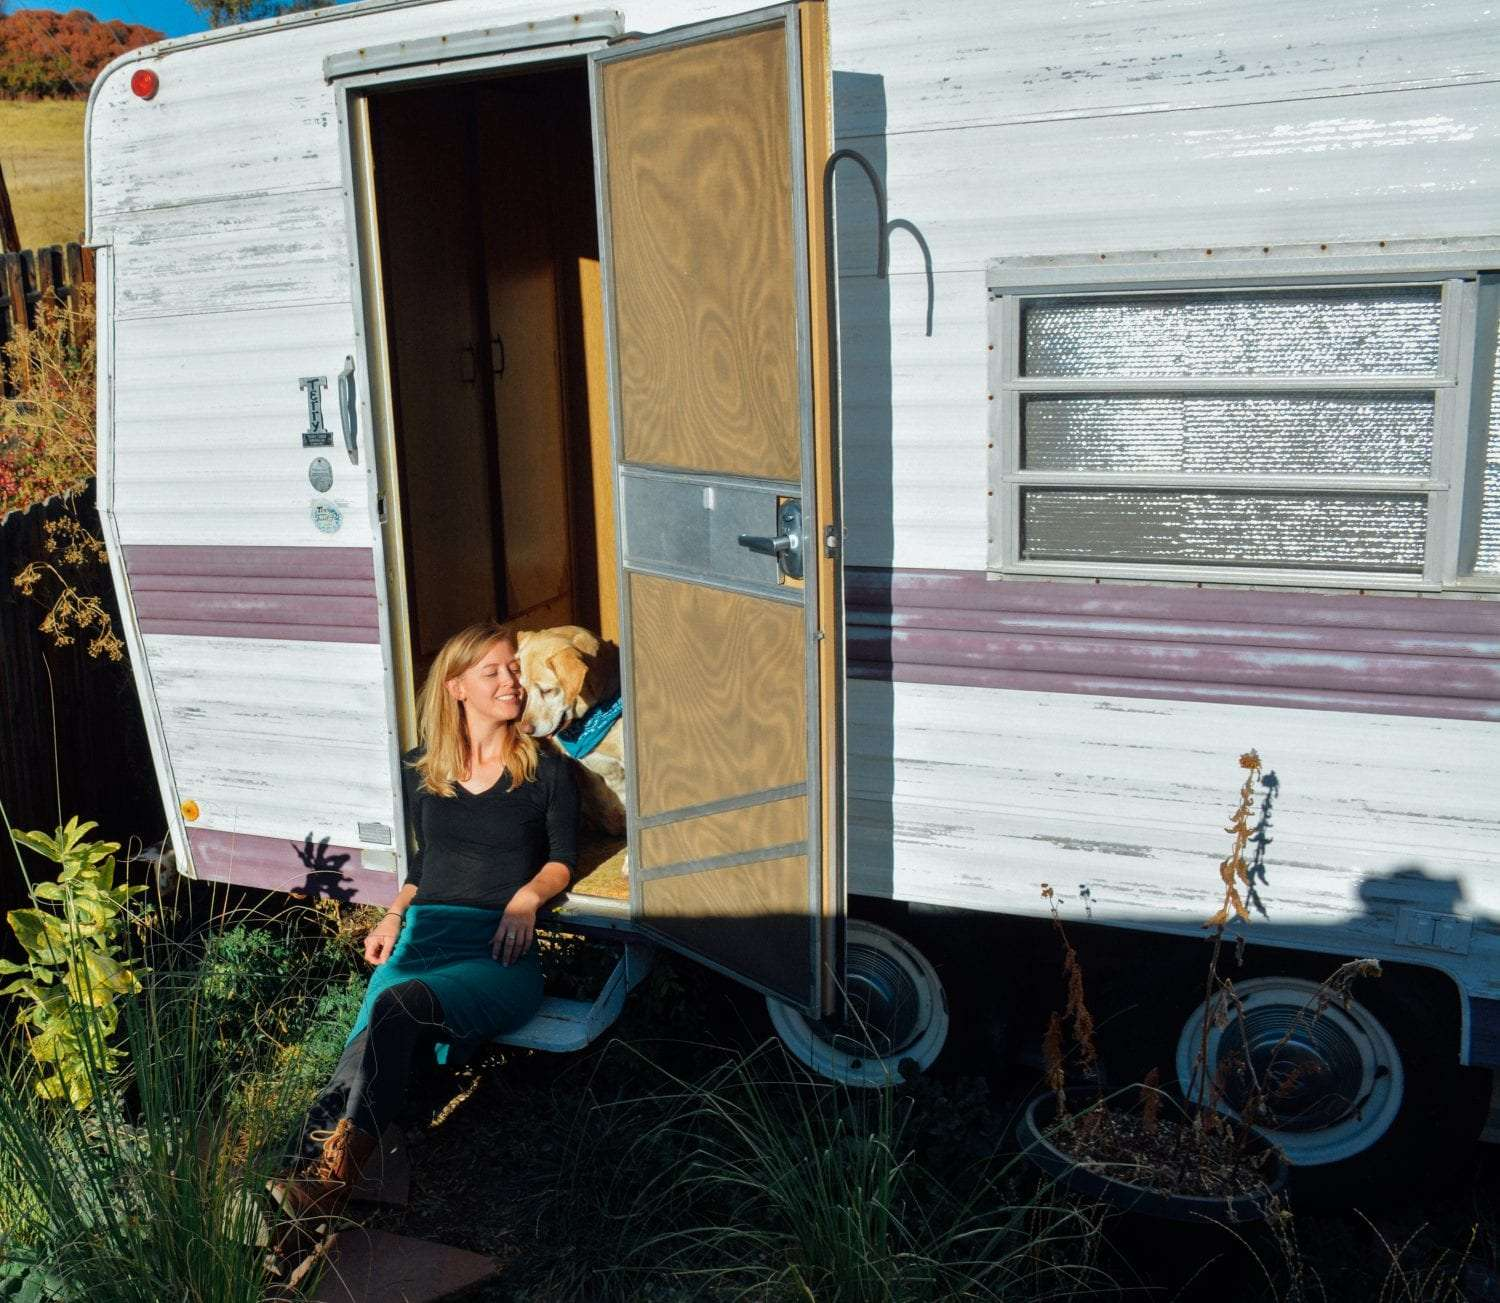 a woman and her dog snuggle in the doorway of a small camping trailer